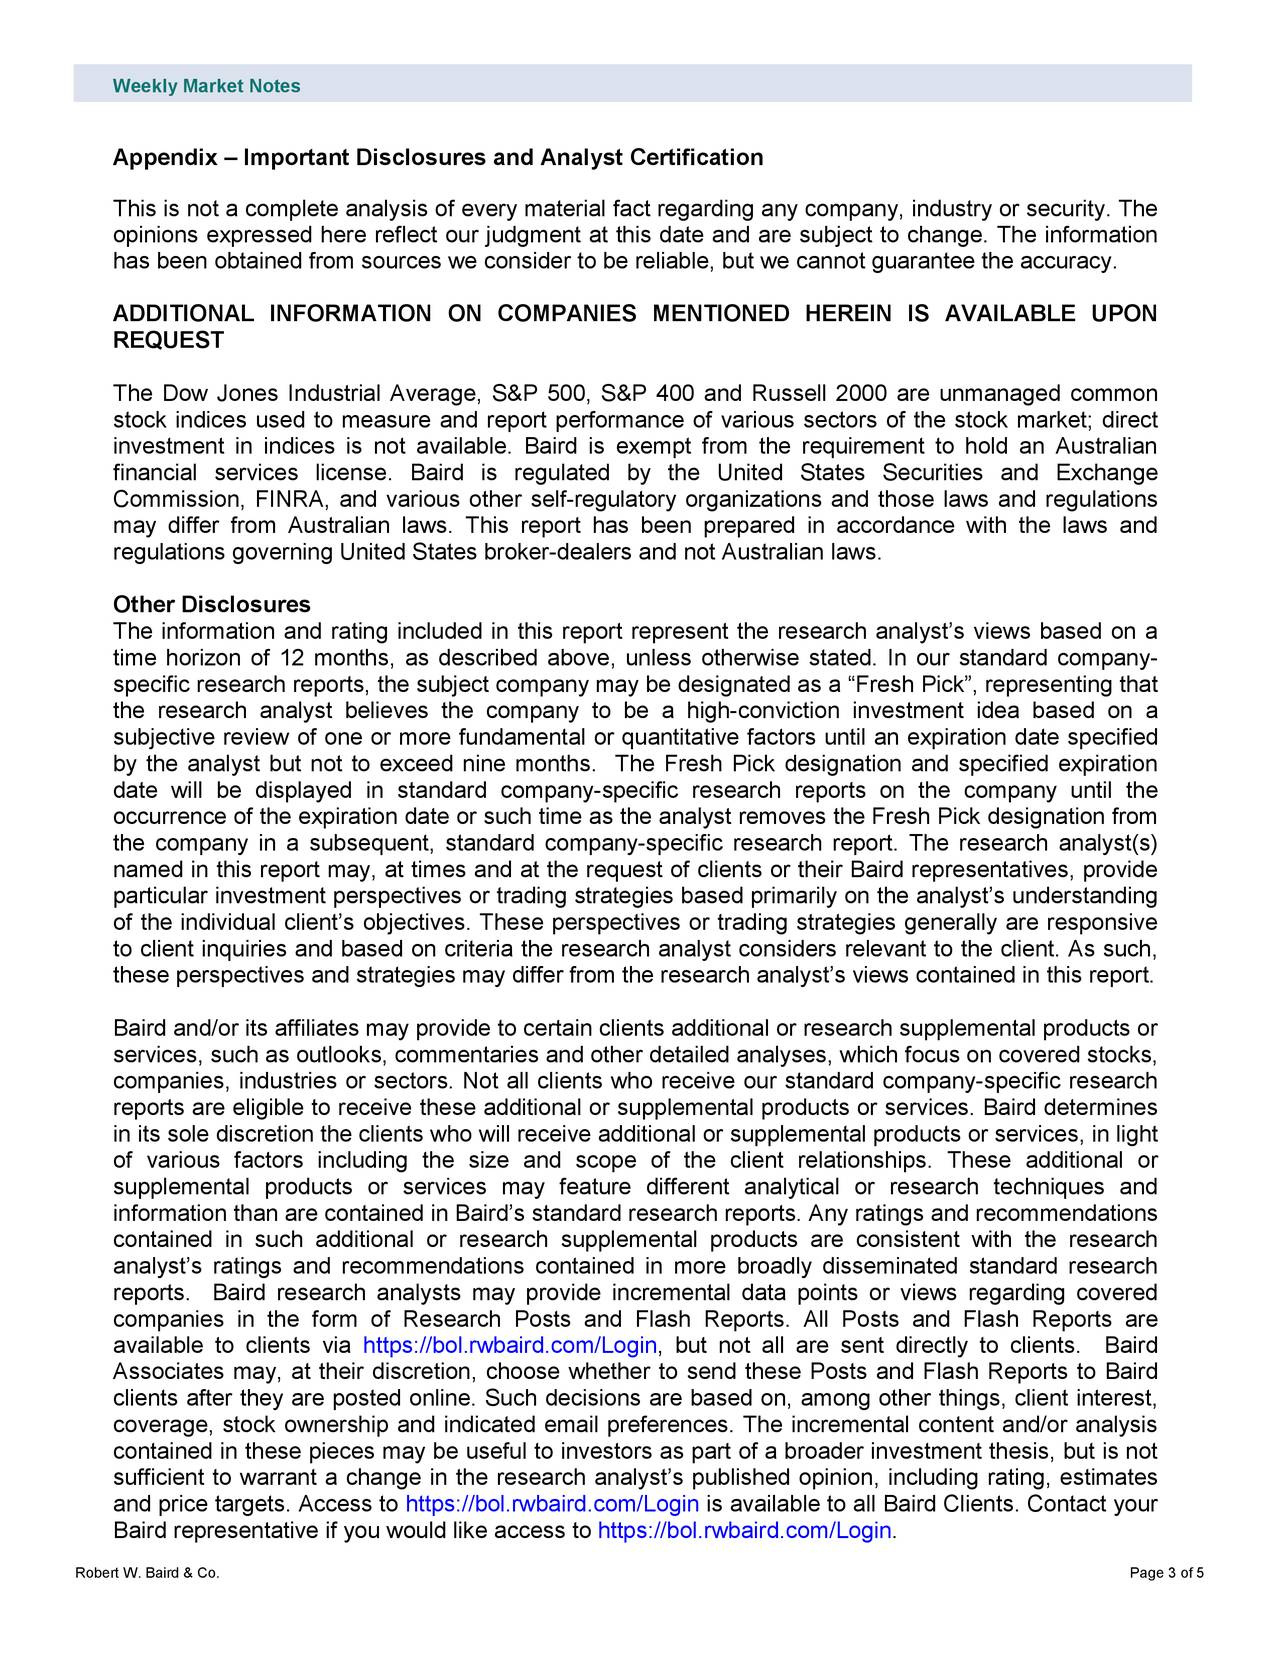 """Appendix – Important Disclosures and Analyst Certification This is not a complete analysis of every material fact regarding any company, industry or security. The opinions expressed here reflect our judgment at this date and are subject to change. The information has been obtained from sources we consider to be reliable, but we cannot guarantee the accuracy. ADDITIONAL INFORMATION ON COMPANIES MENTIONED HEREIN IS AVAILABLE UPON REQUEST The Dow Jones Industrial Average, S&P 500, S&P 400 and Russell 2000 are unmana ged common stock indices used to measure and report performance of various sectors of the stock market; direct investment in indices is not available. Baird is exempt from the requirement to hold an Australian financial services license. Baird is regulated by the United States Securities and Exchange Commission, FINRA, and various other self -regulatory organizations and those laws and regulations may differ from Australian laws. This report has been prepared in accordance with the laws and regulations governing United States broker-dealers and not Australian laws. Other Disclosures The information and rating included in this report represent the research analyst's views based on a time horizon of 12 months , as described above, unless otherwise stated. In ou r standard company- specific research reports, the subject company may be designated as a """"Fresh Pick"""", representing that the research analyst believes the company to be a high -conviction investment idea based on a subjective review of one or more fundament al or quantitative factors until an expiration date specified by the analyst but not to exceed nine months. The Fresh Pick designation and specified expiration date will be displayed in standard company -specific research reports on the company until the occurrence of the expiration date or such time as the analyst removes the Fresh Pick designation from the company in a subsequent, standard company -specific research report. The research analyst(s"""